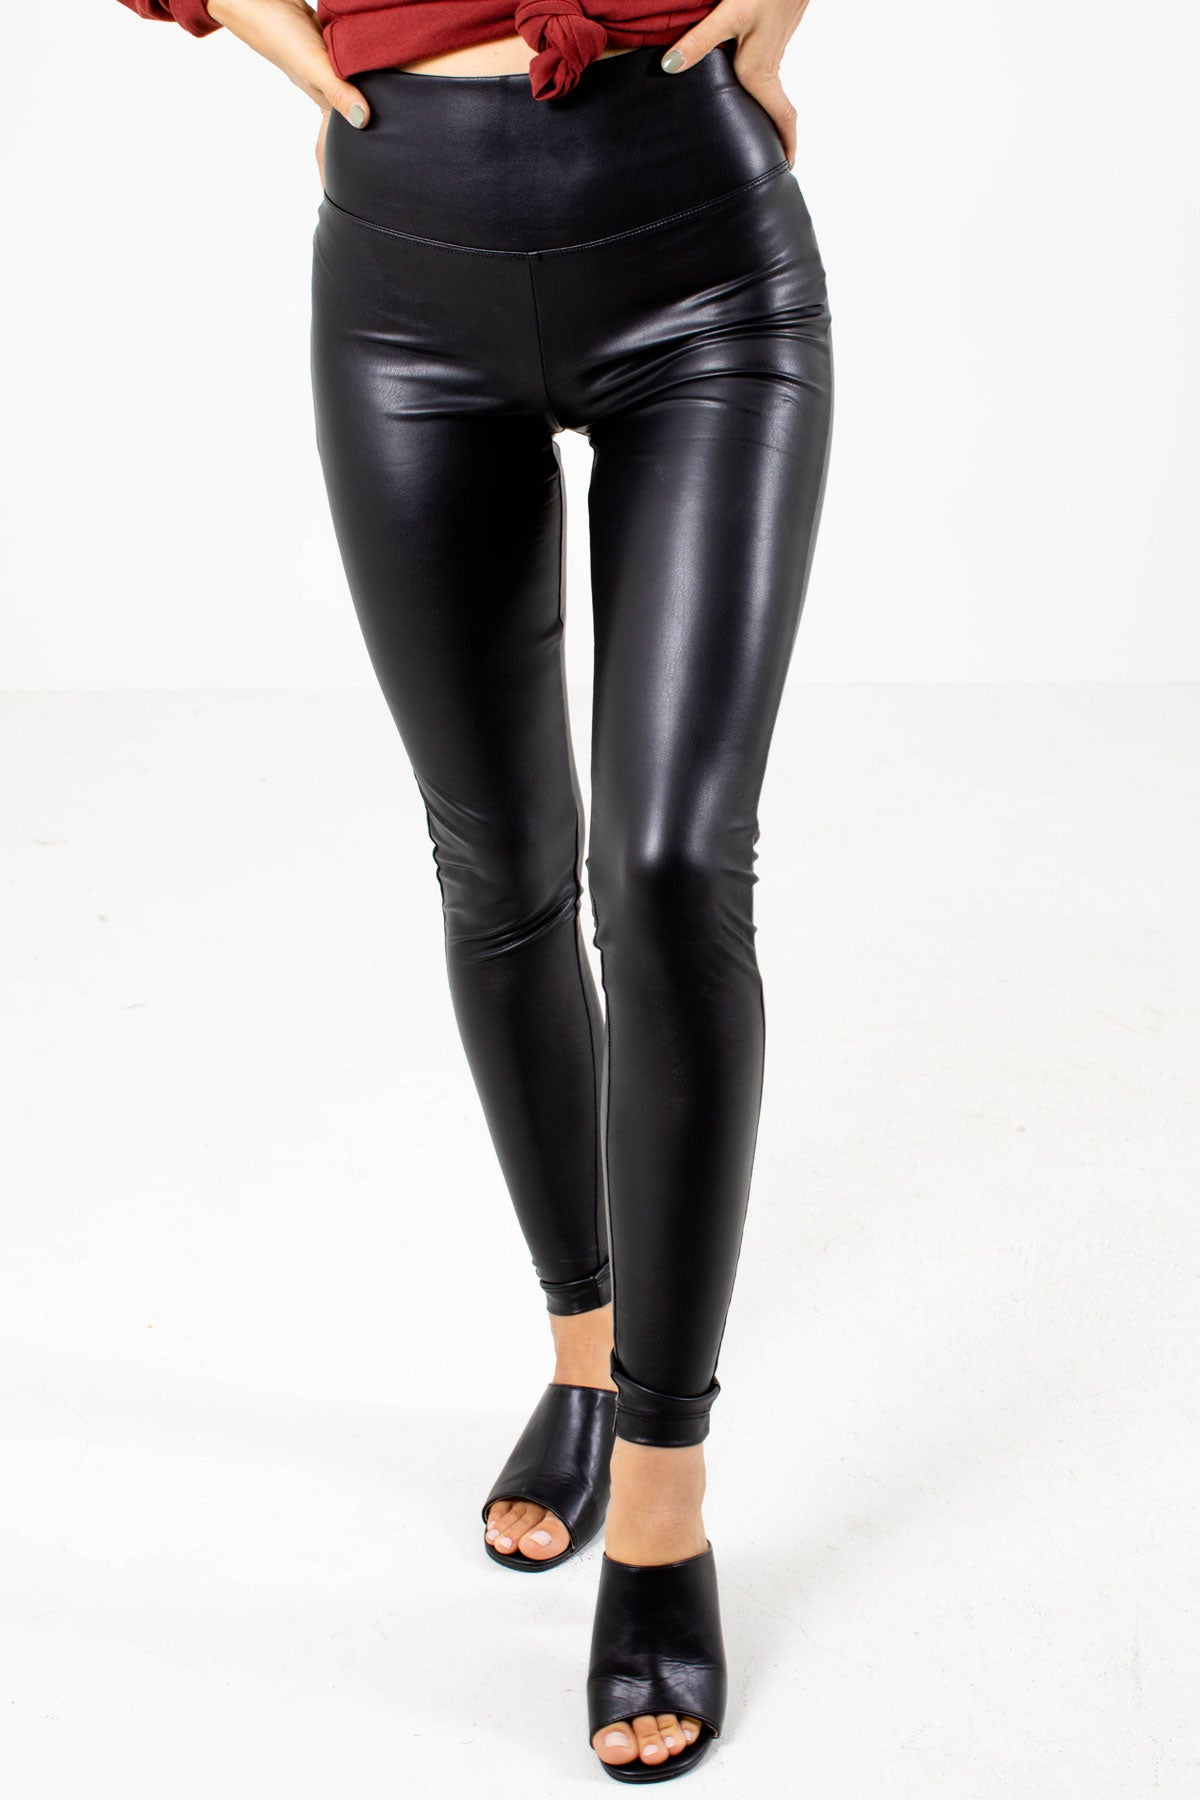 Black Faux Leather Boutique Leggings for Women